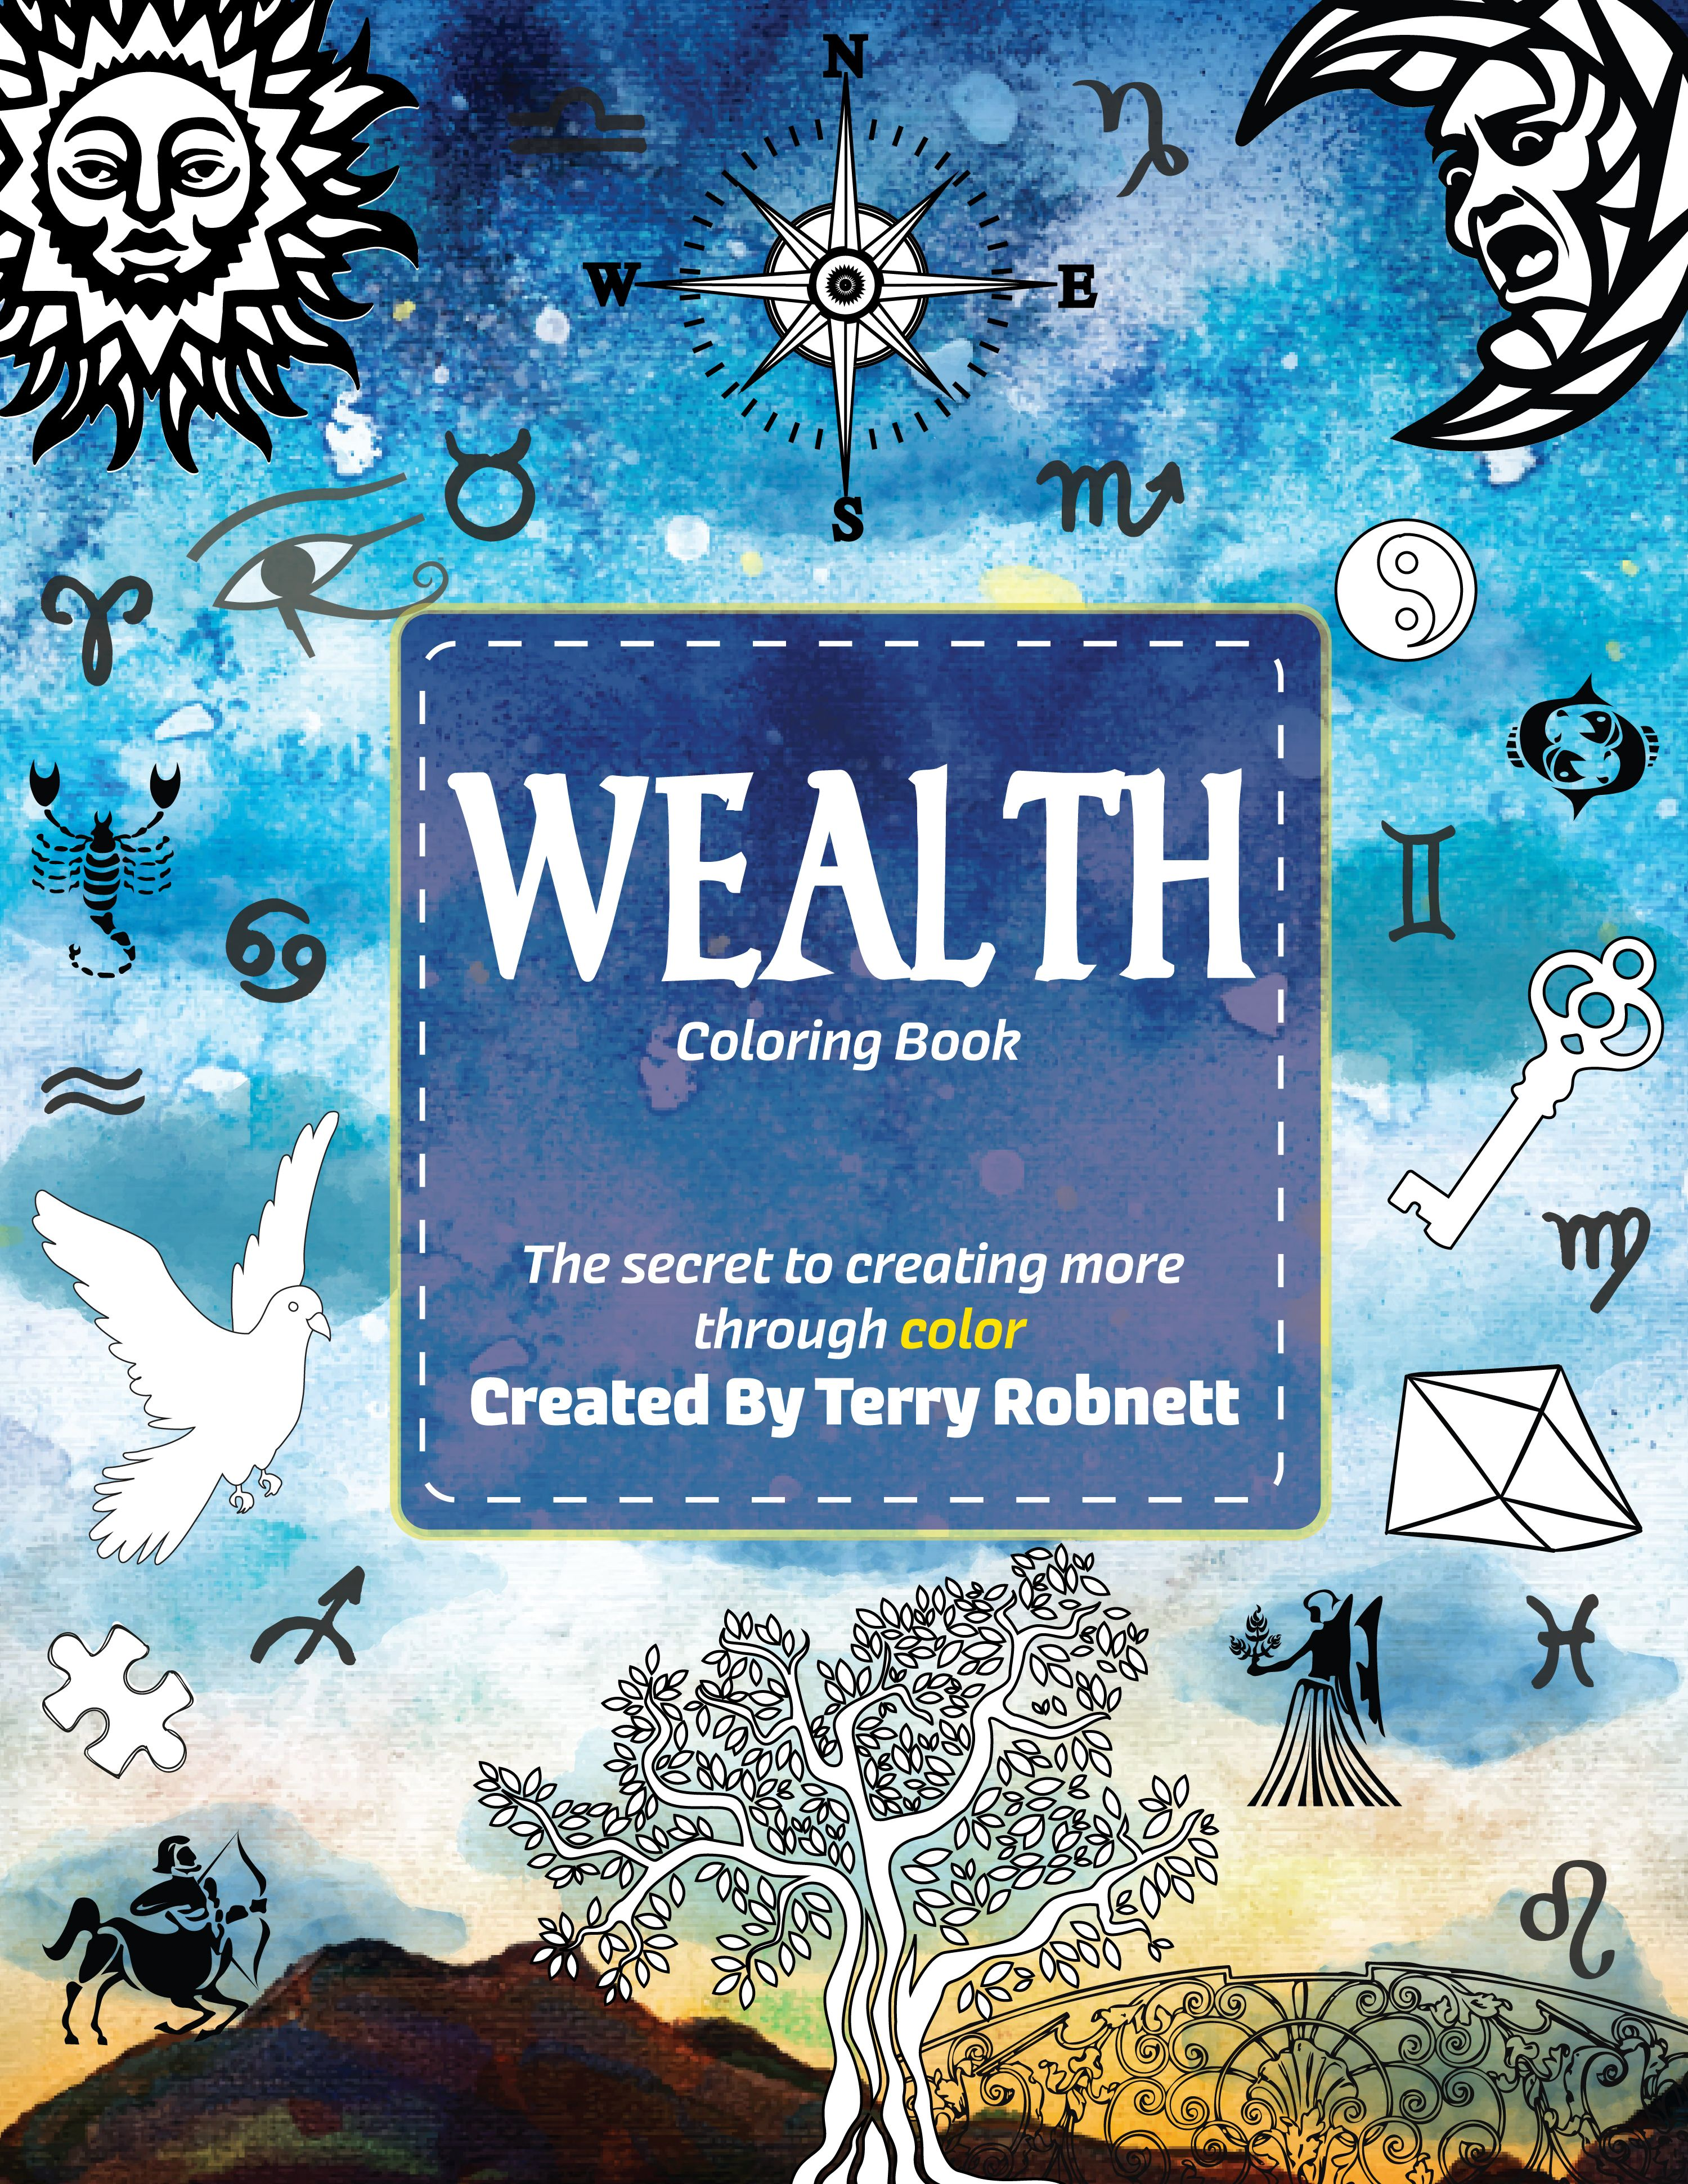 WEALTH COLORING BOOK  The secret to creating more through color is based on the concepts used in the law of attraction combined with the effects of color on the human mind.  According to the law of attraction, we bring things we desire into existence and attract through our thoughts and feelings.  The belief is that we create what we think about most.   For more life enhancing guidance go to:  www.LoveHealingBalance.com